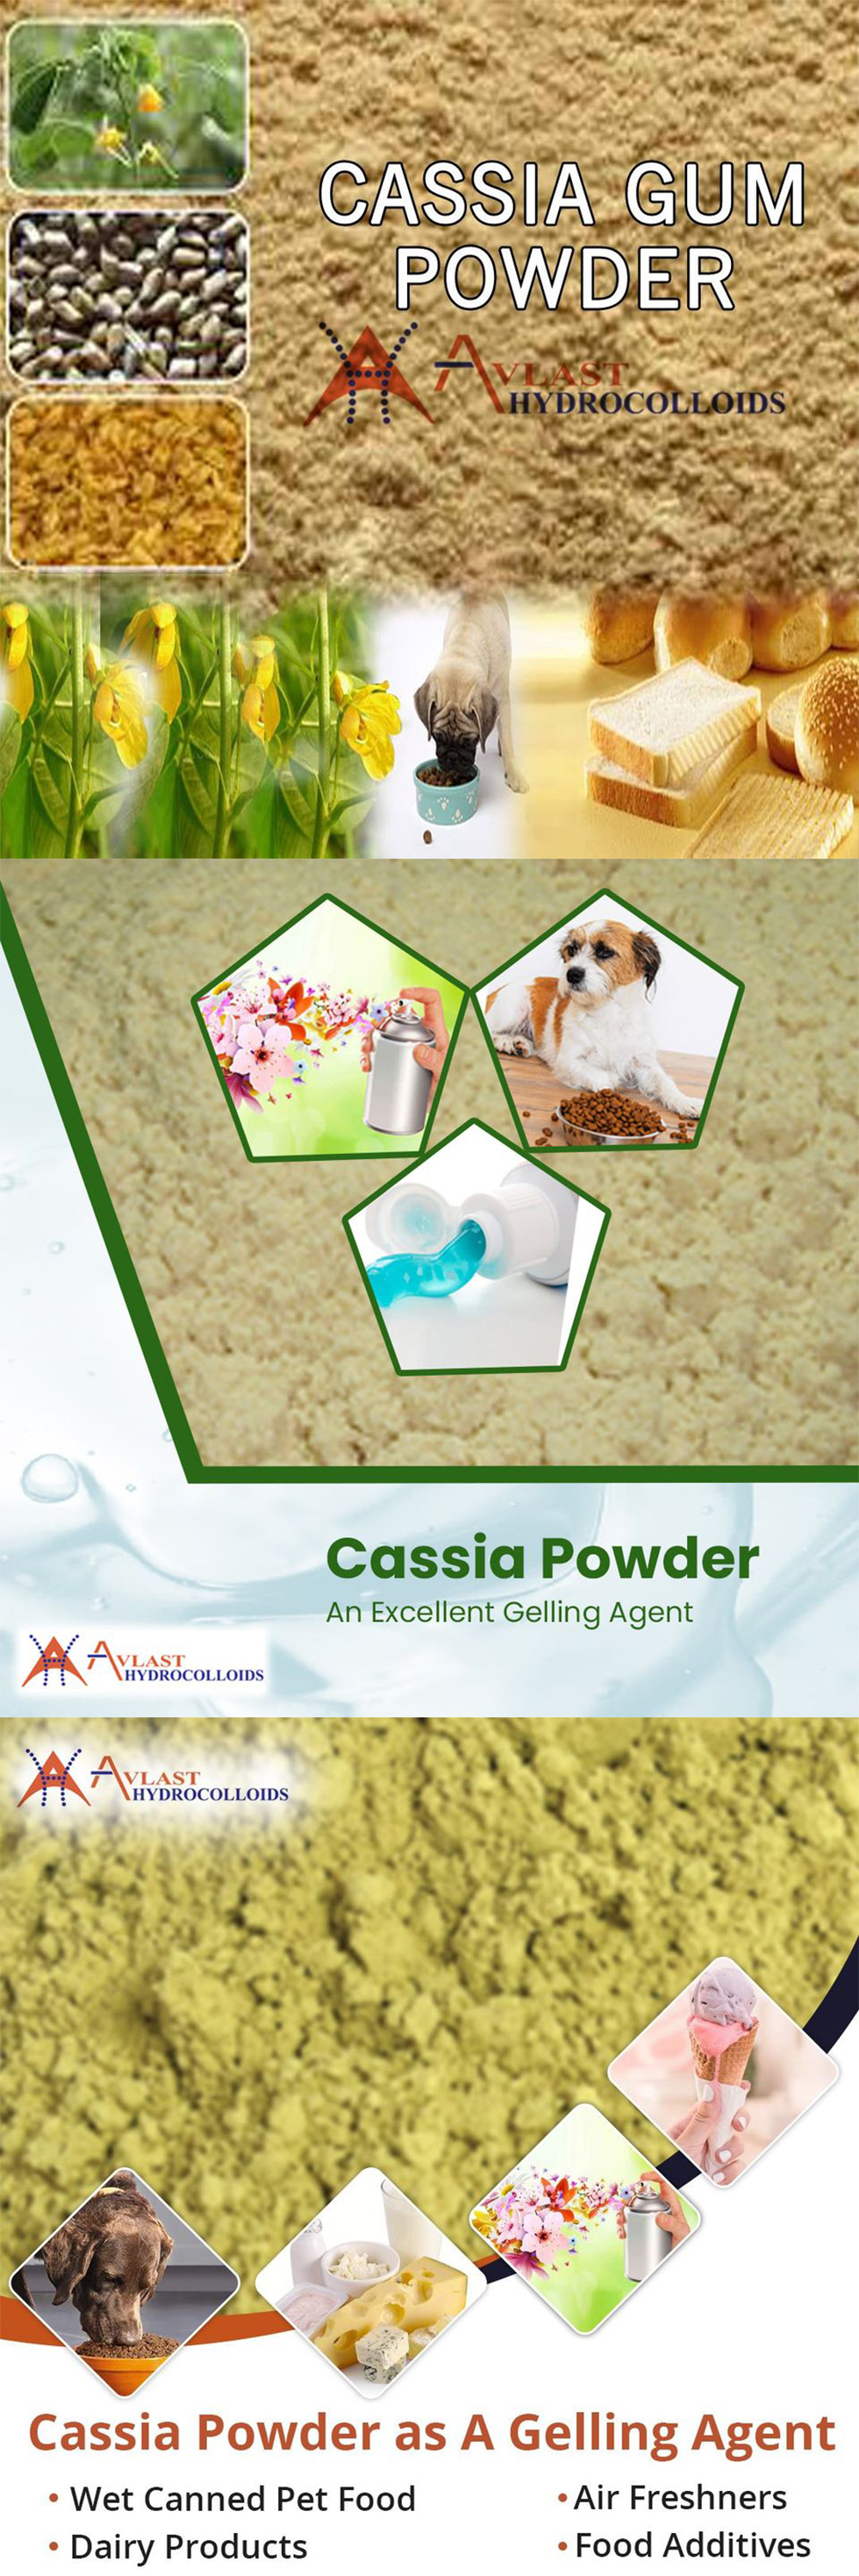 Cassia Gum Powder Usage in Preparing Air Fresheners